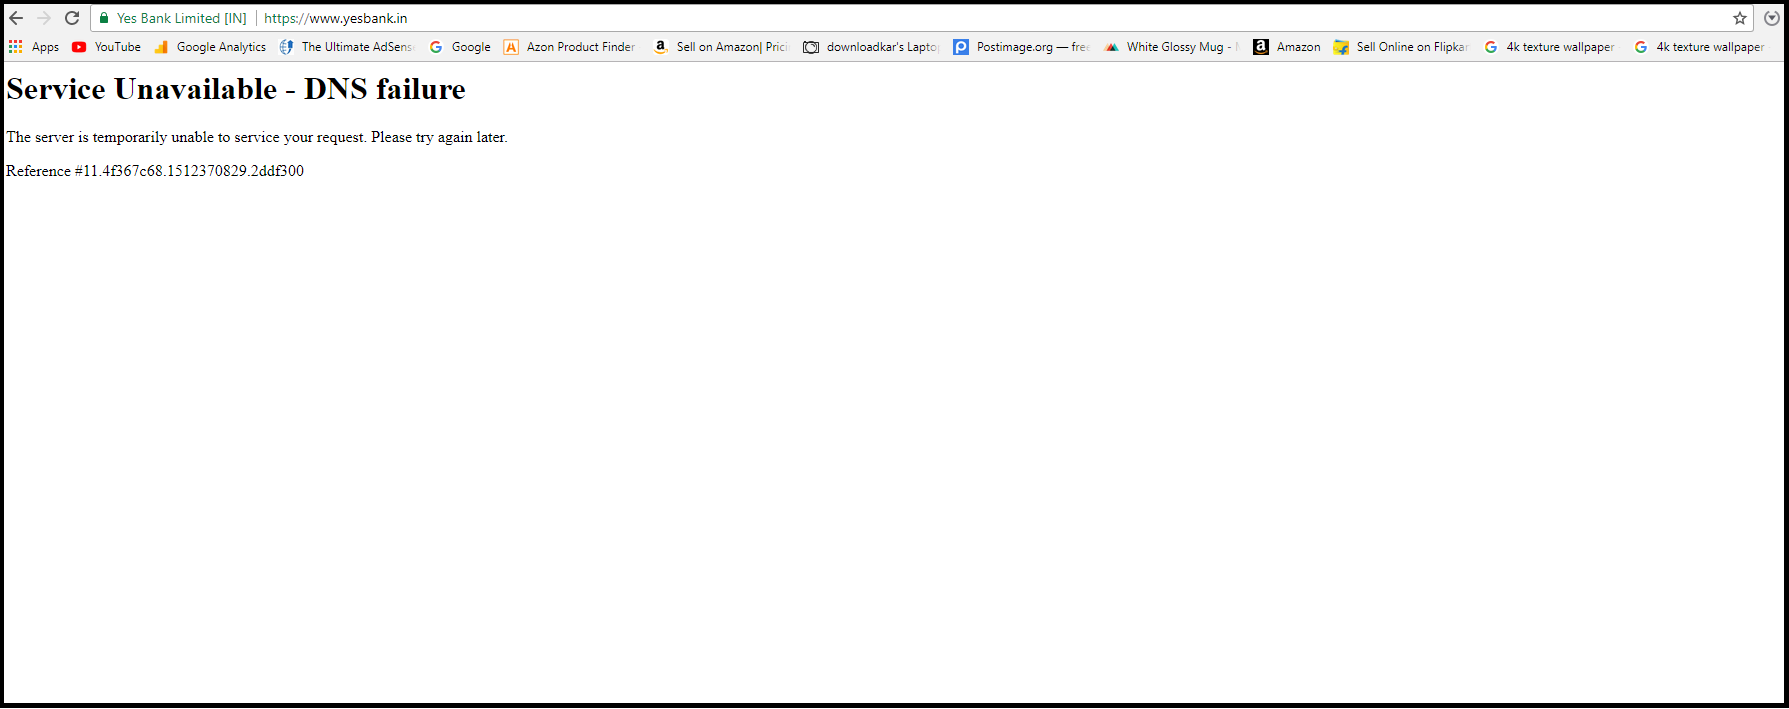 Yes Bank Website Down for reason DNS failure